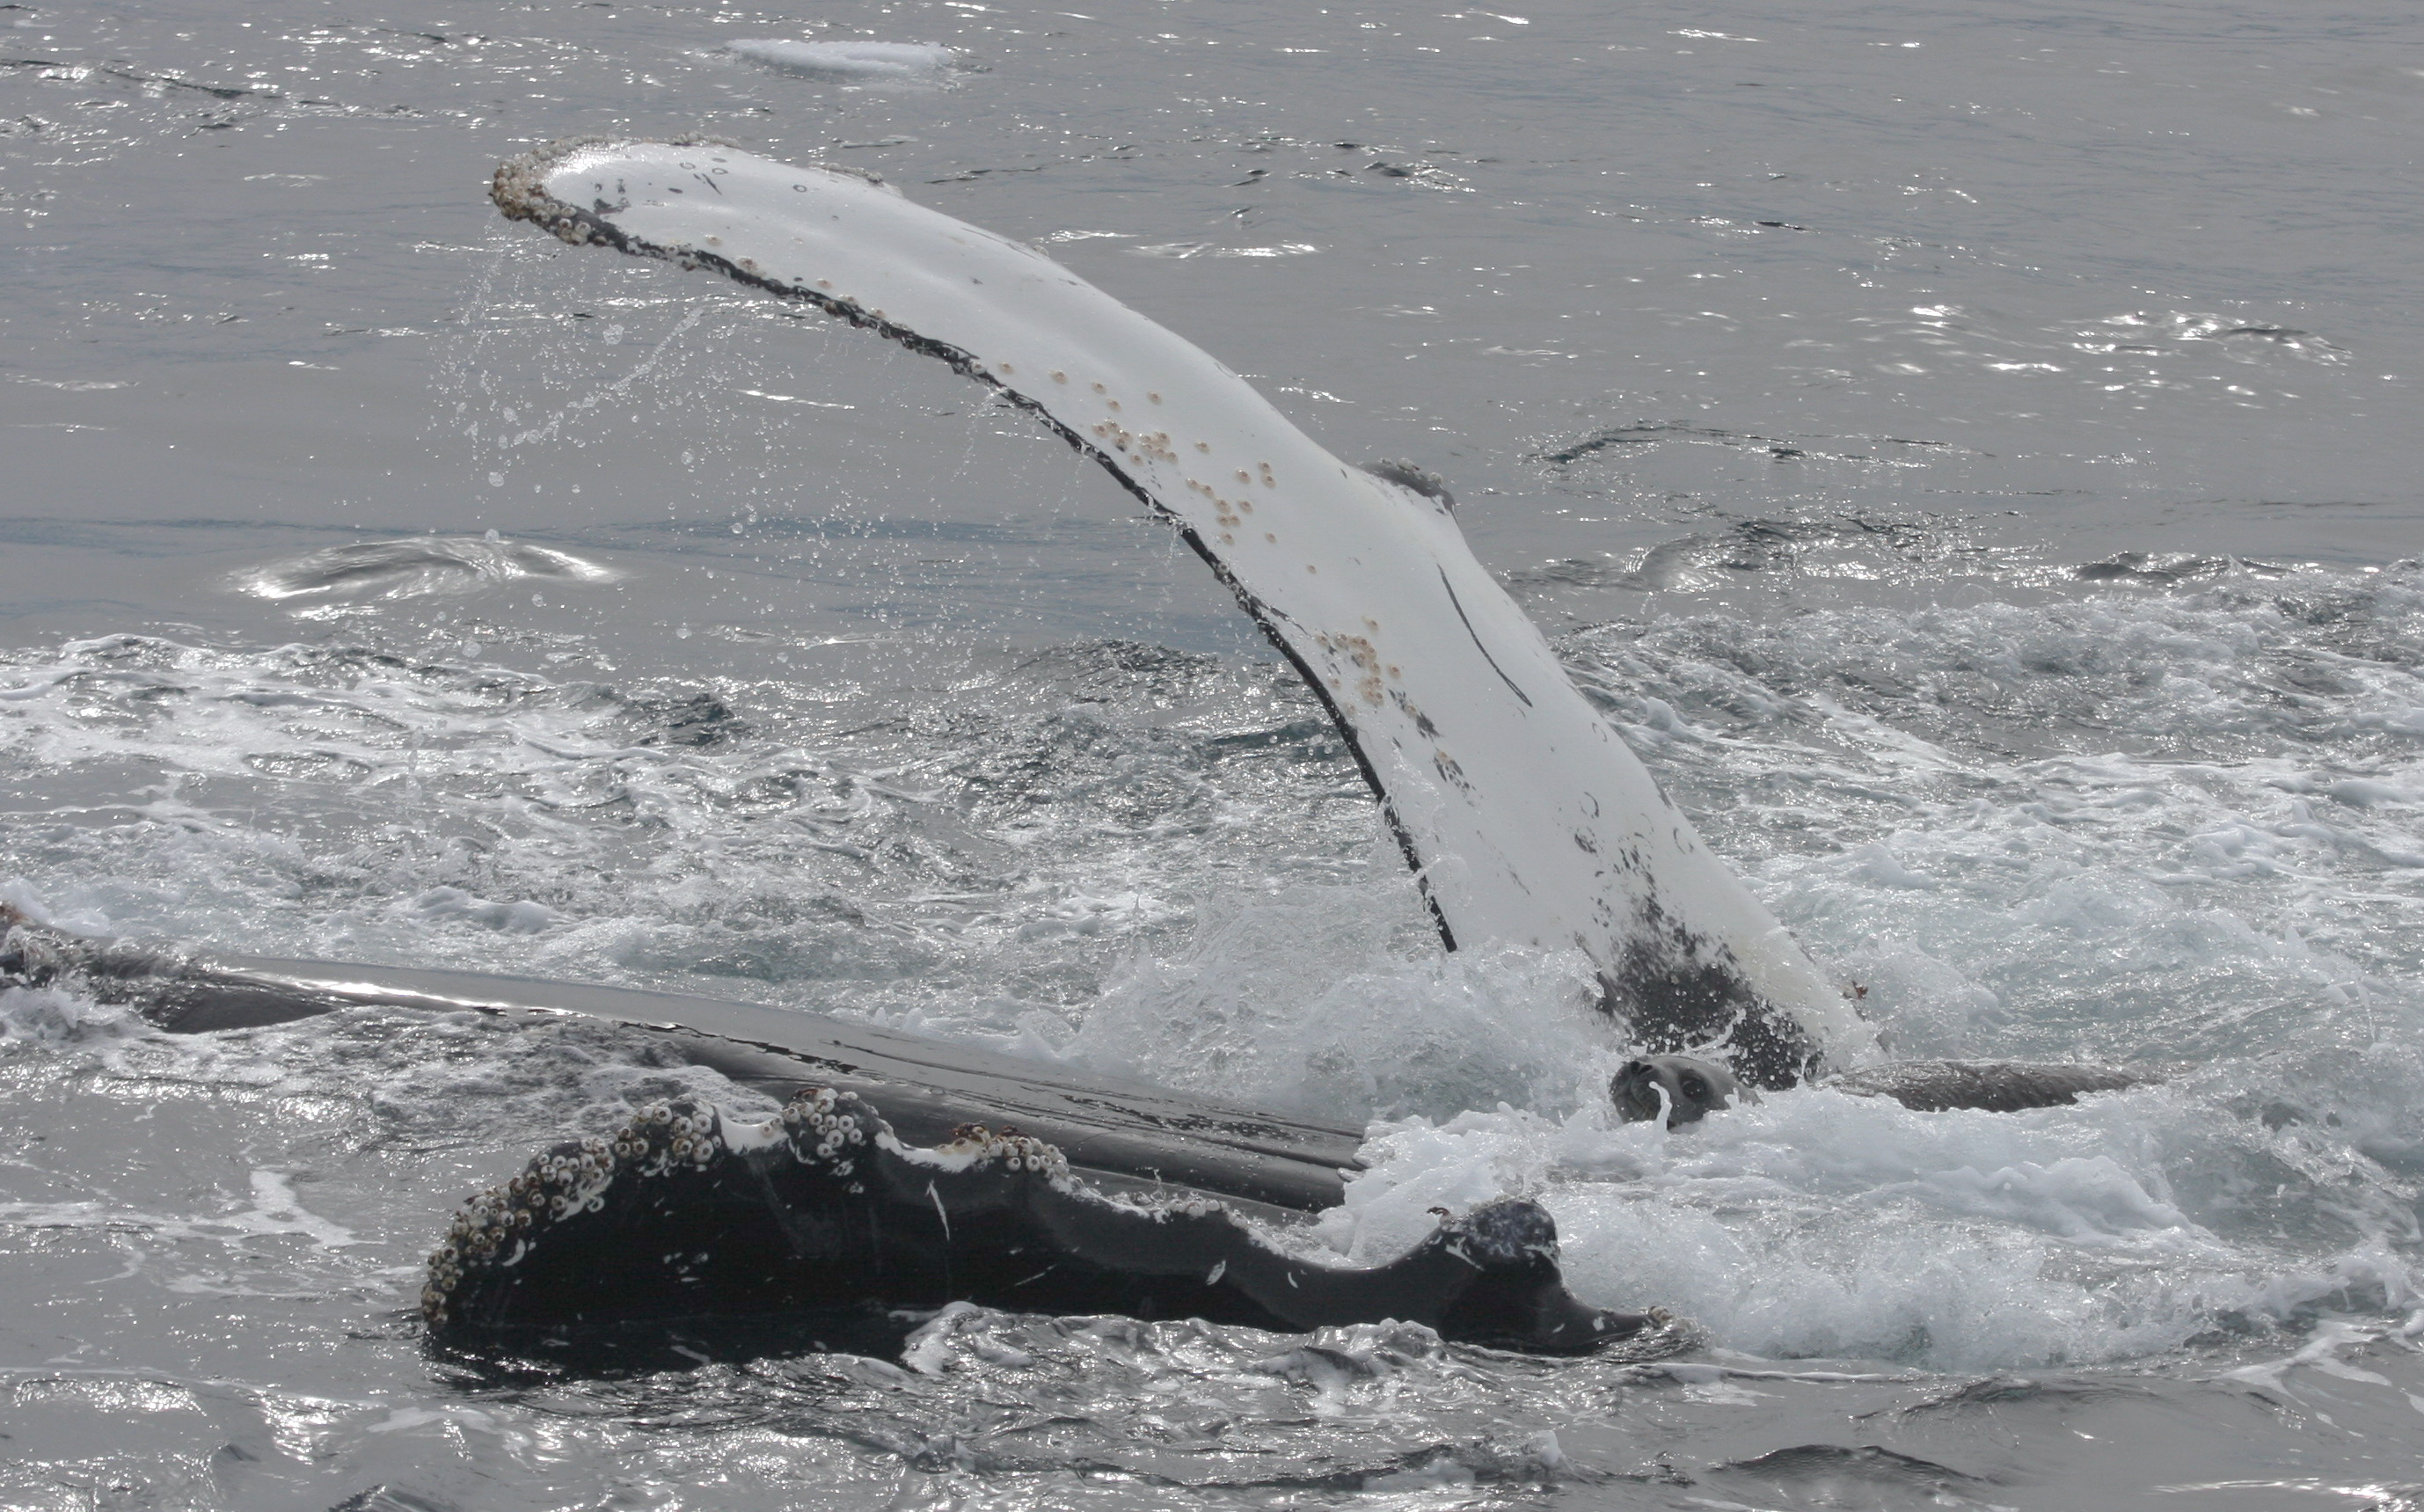 A humpback whale protects a Weddell seal from attacking killer whales. Photo by Robert L. Pitman.